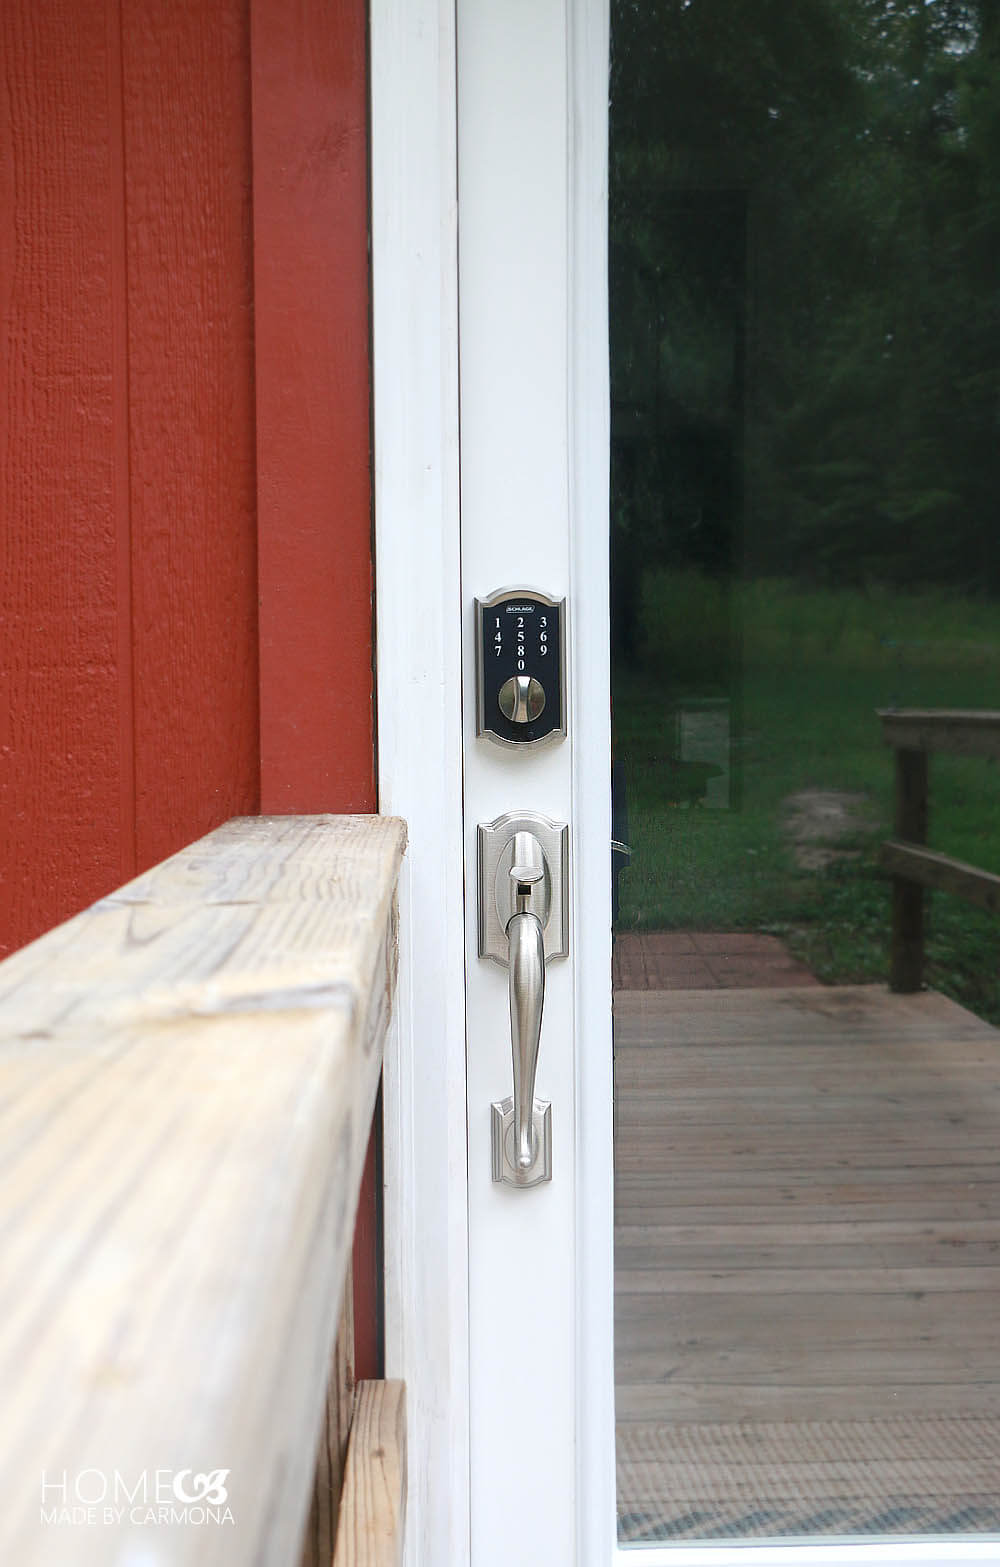 Schlage Touch Keyless Touchscreen Lock - Camelot style